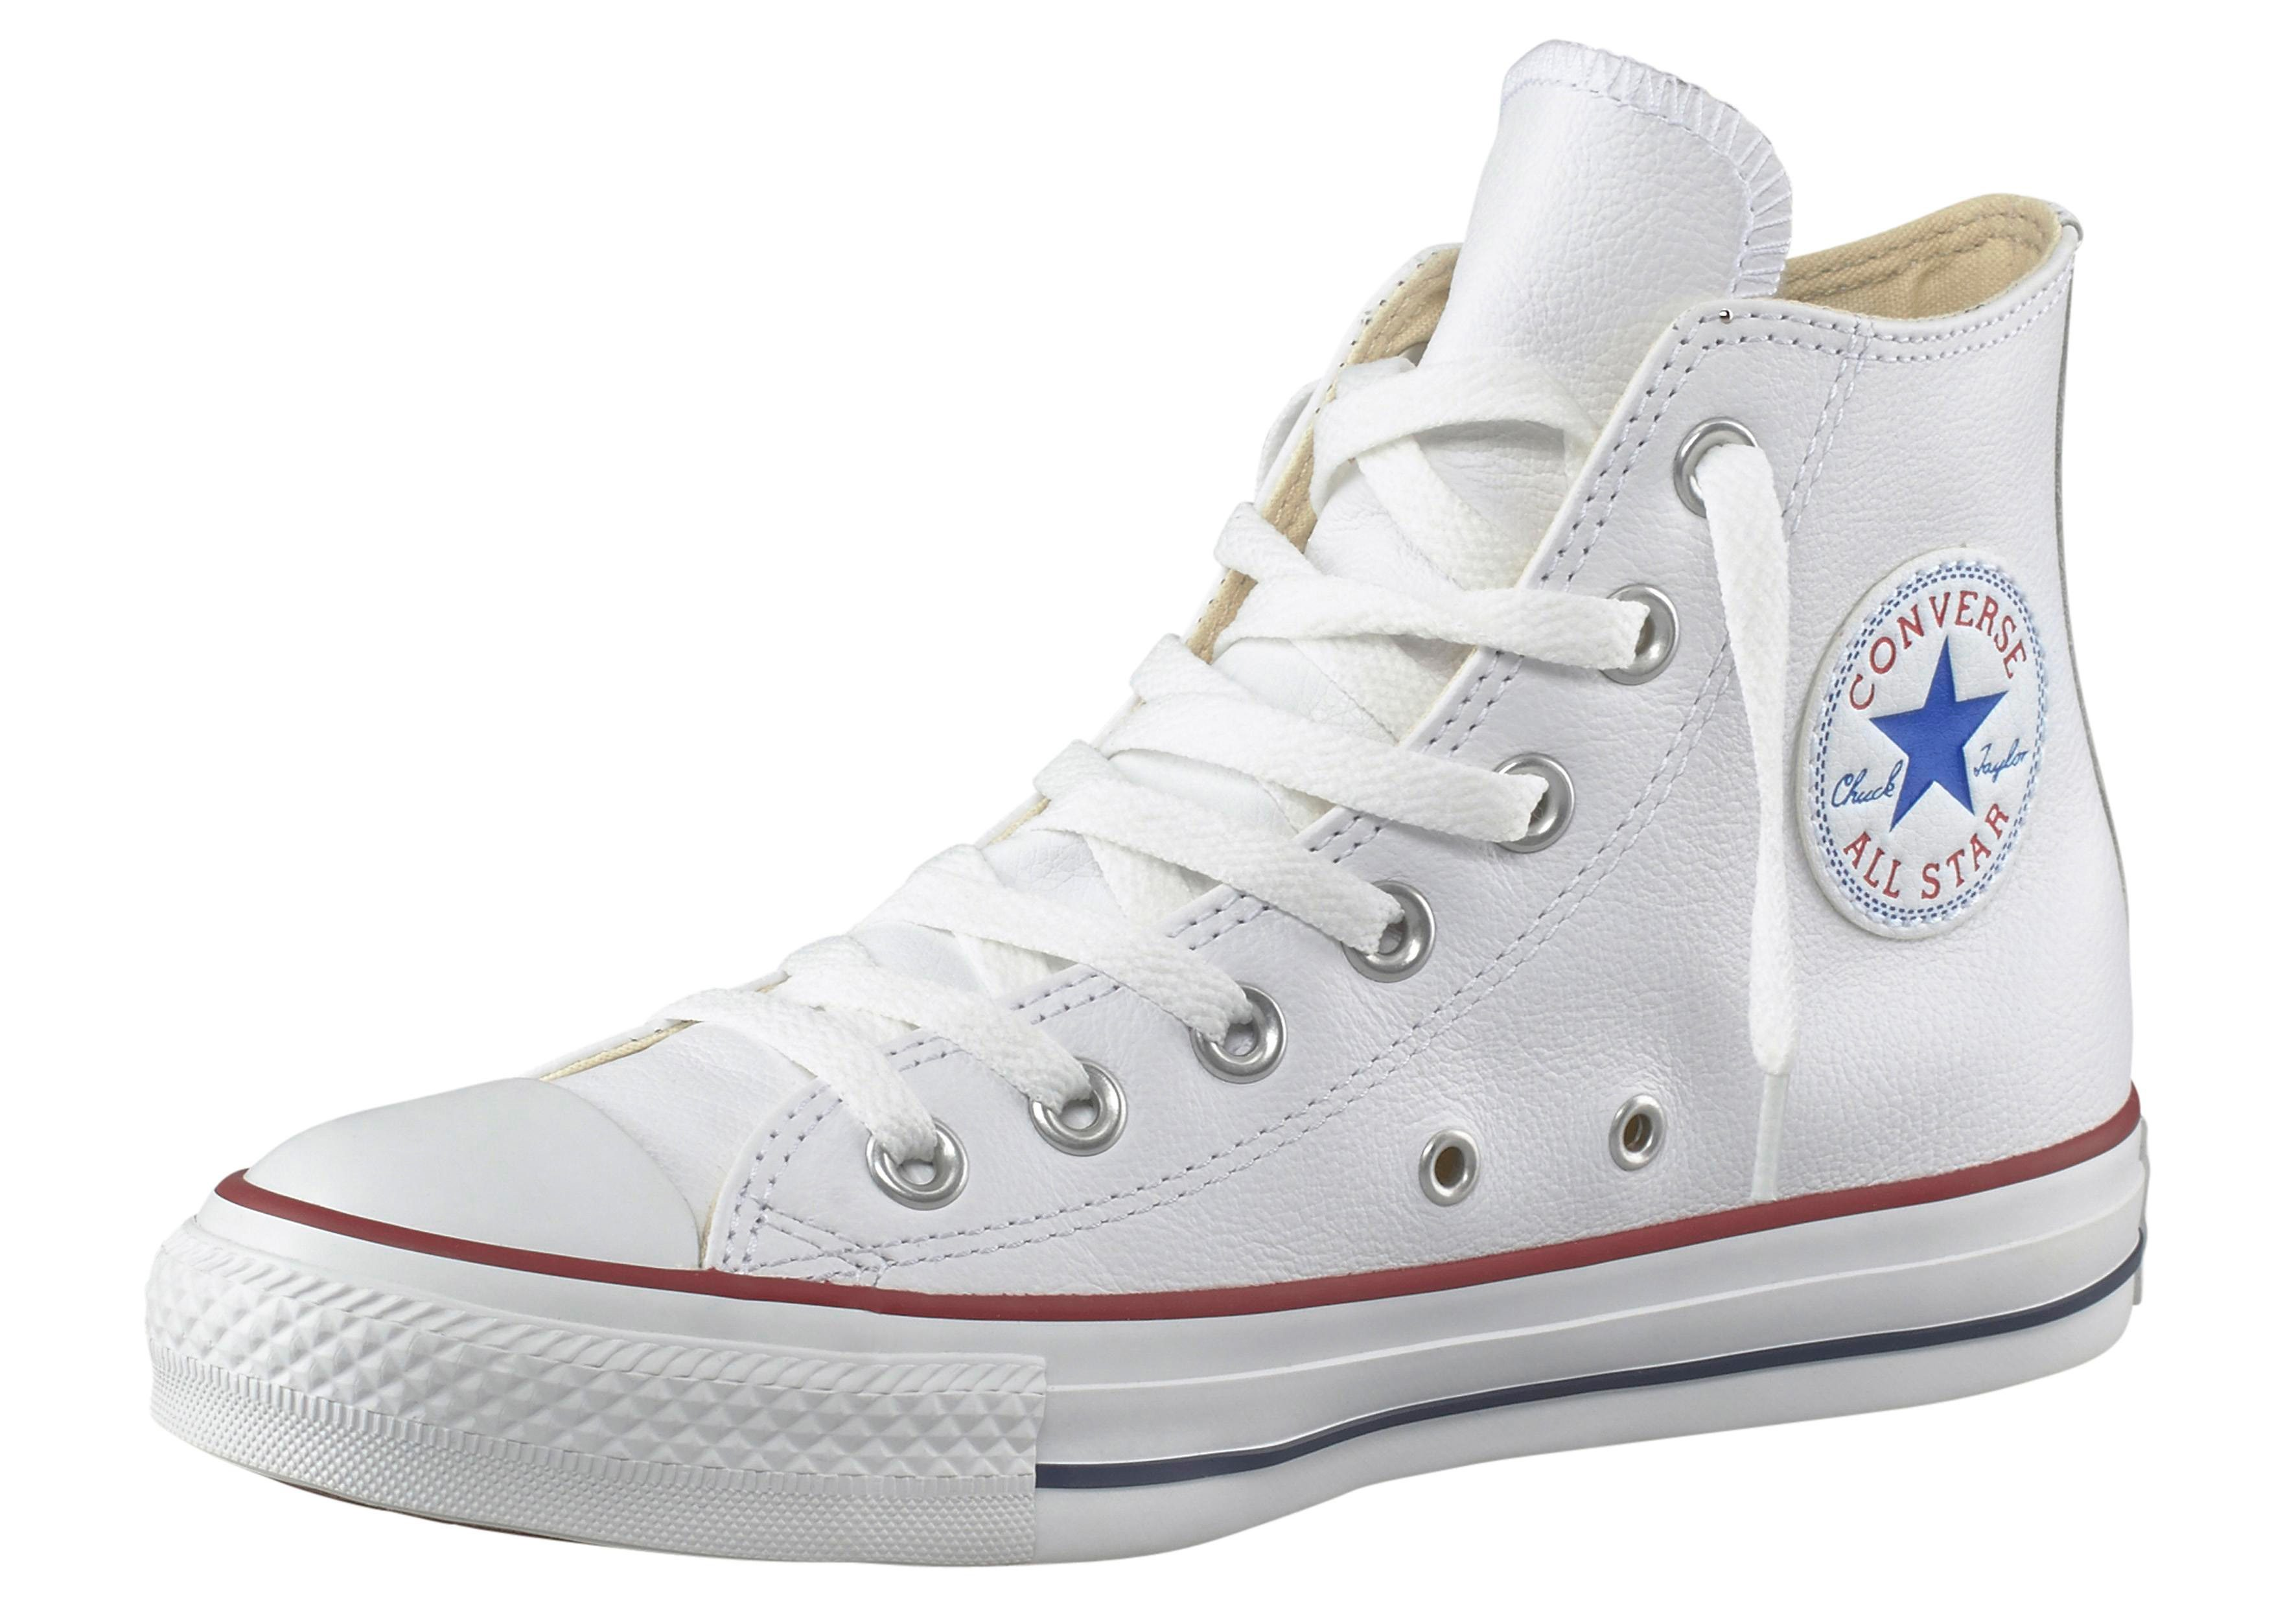 Converse »Chuck Taylor All Star Basic Leather Hi« Sneaker online kaufen | OTTO